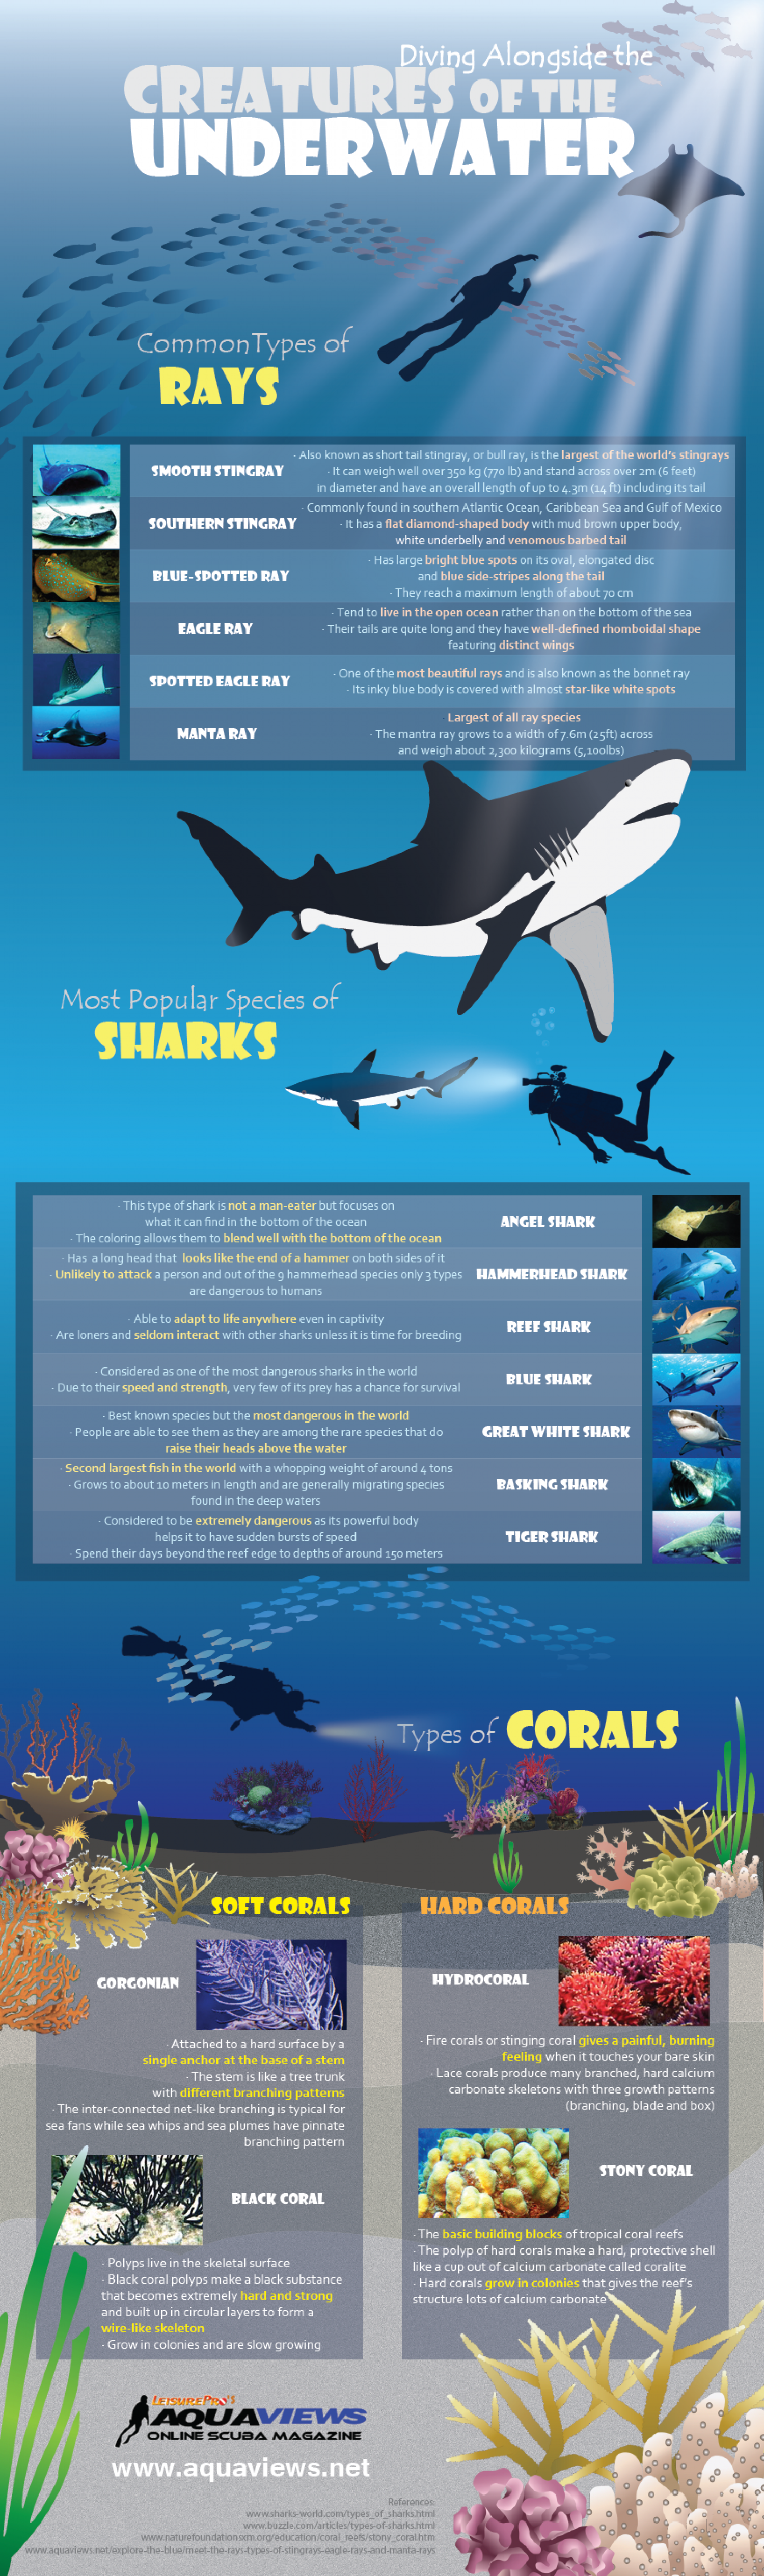 Diving Alongside the Creatures of The Underwater Infographic